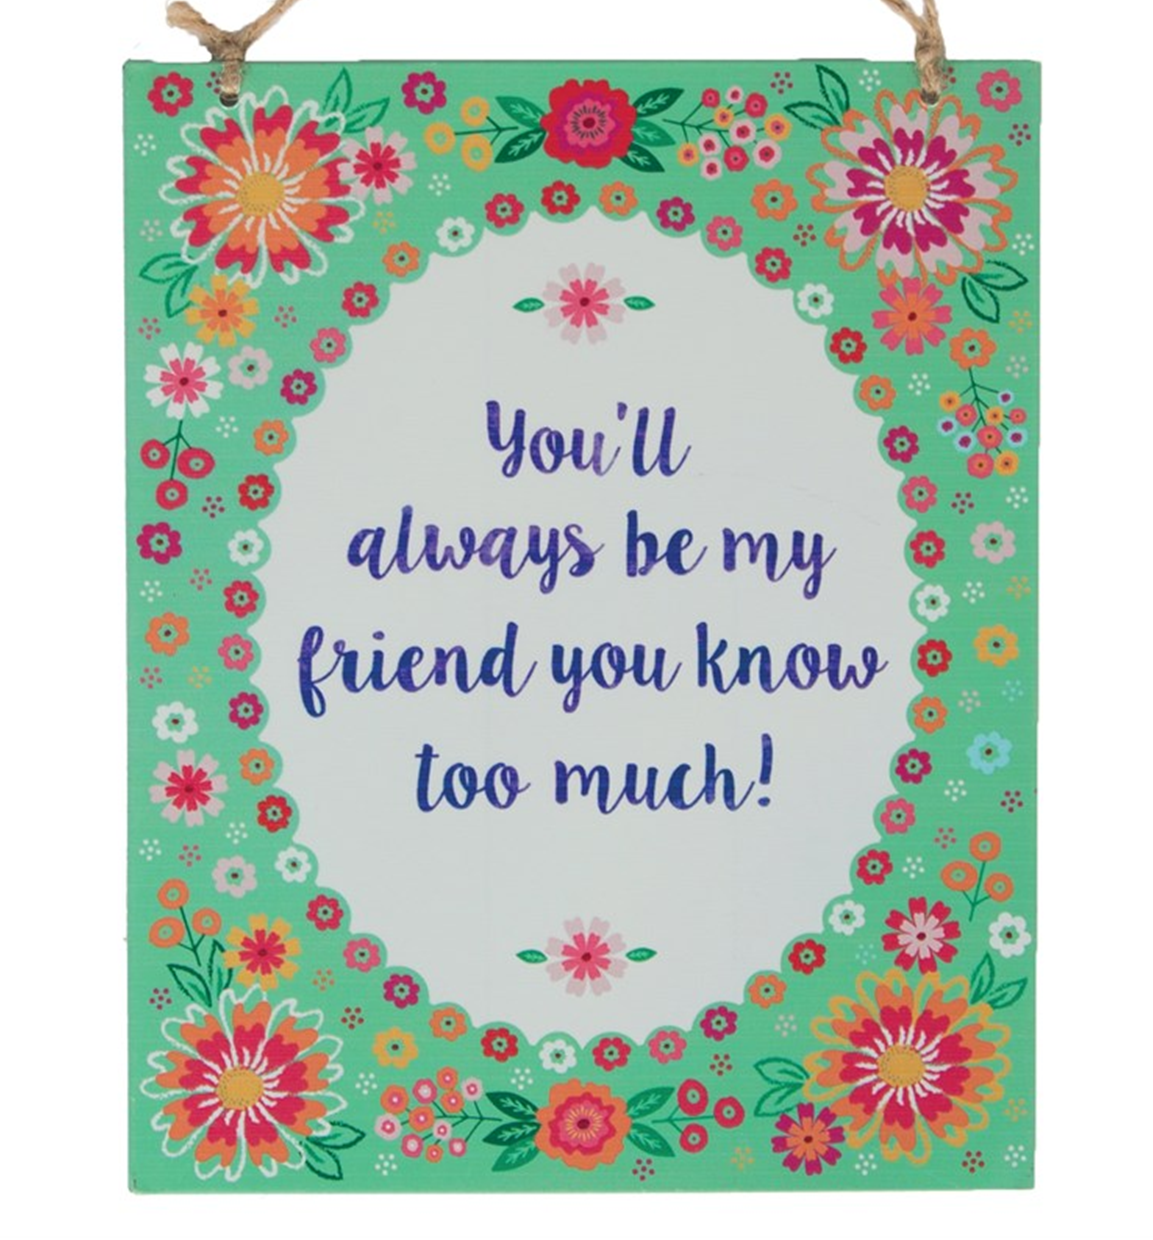 small_Youll_always_be_my_friend_plaque_FEI062